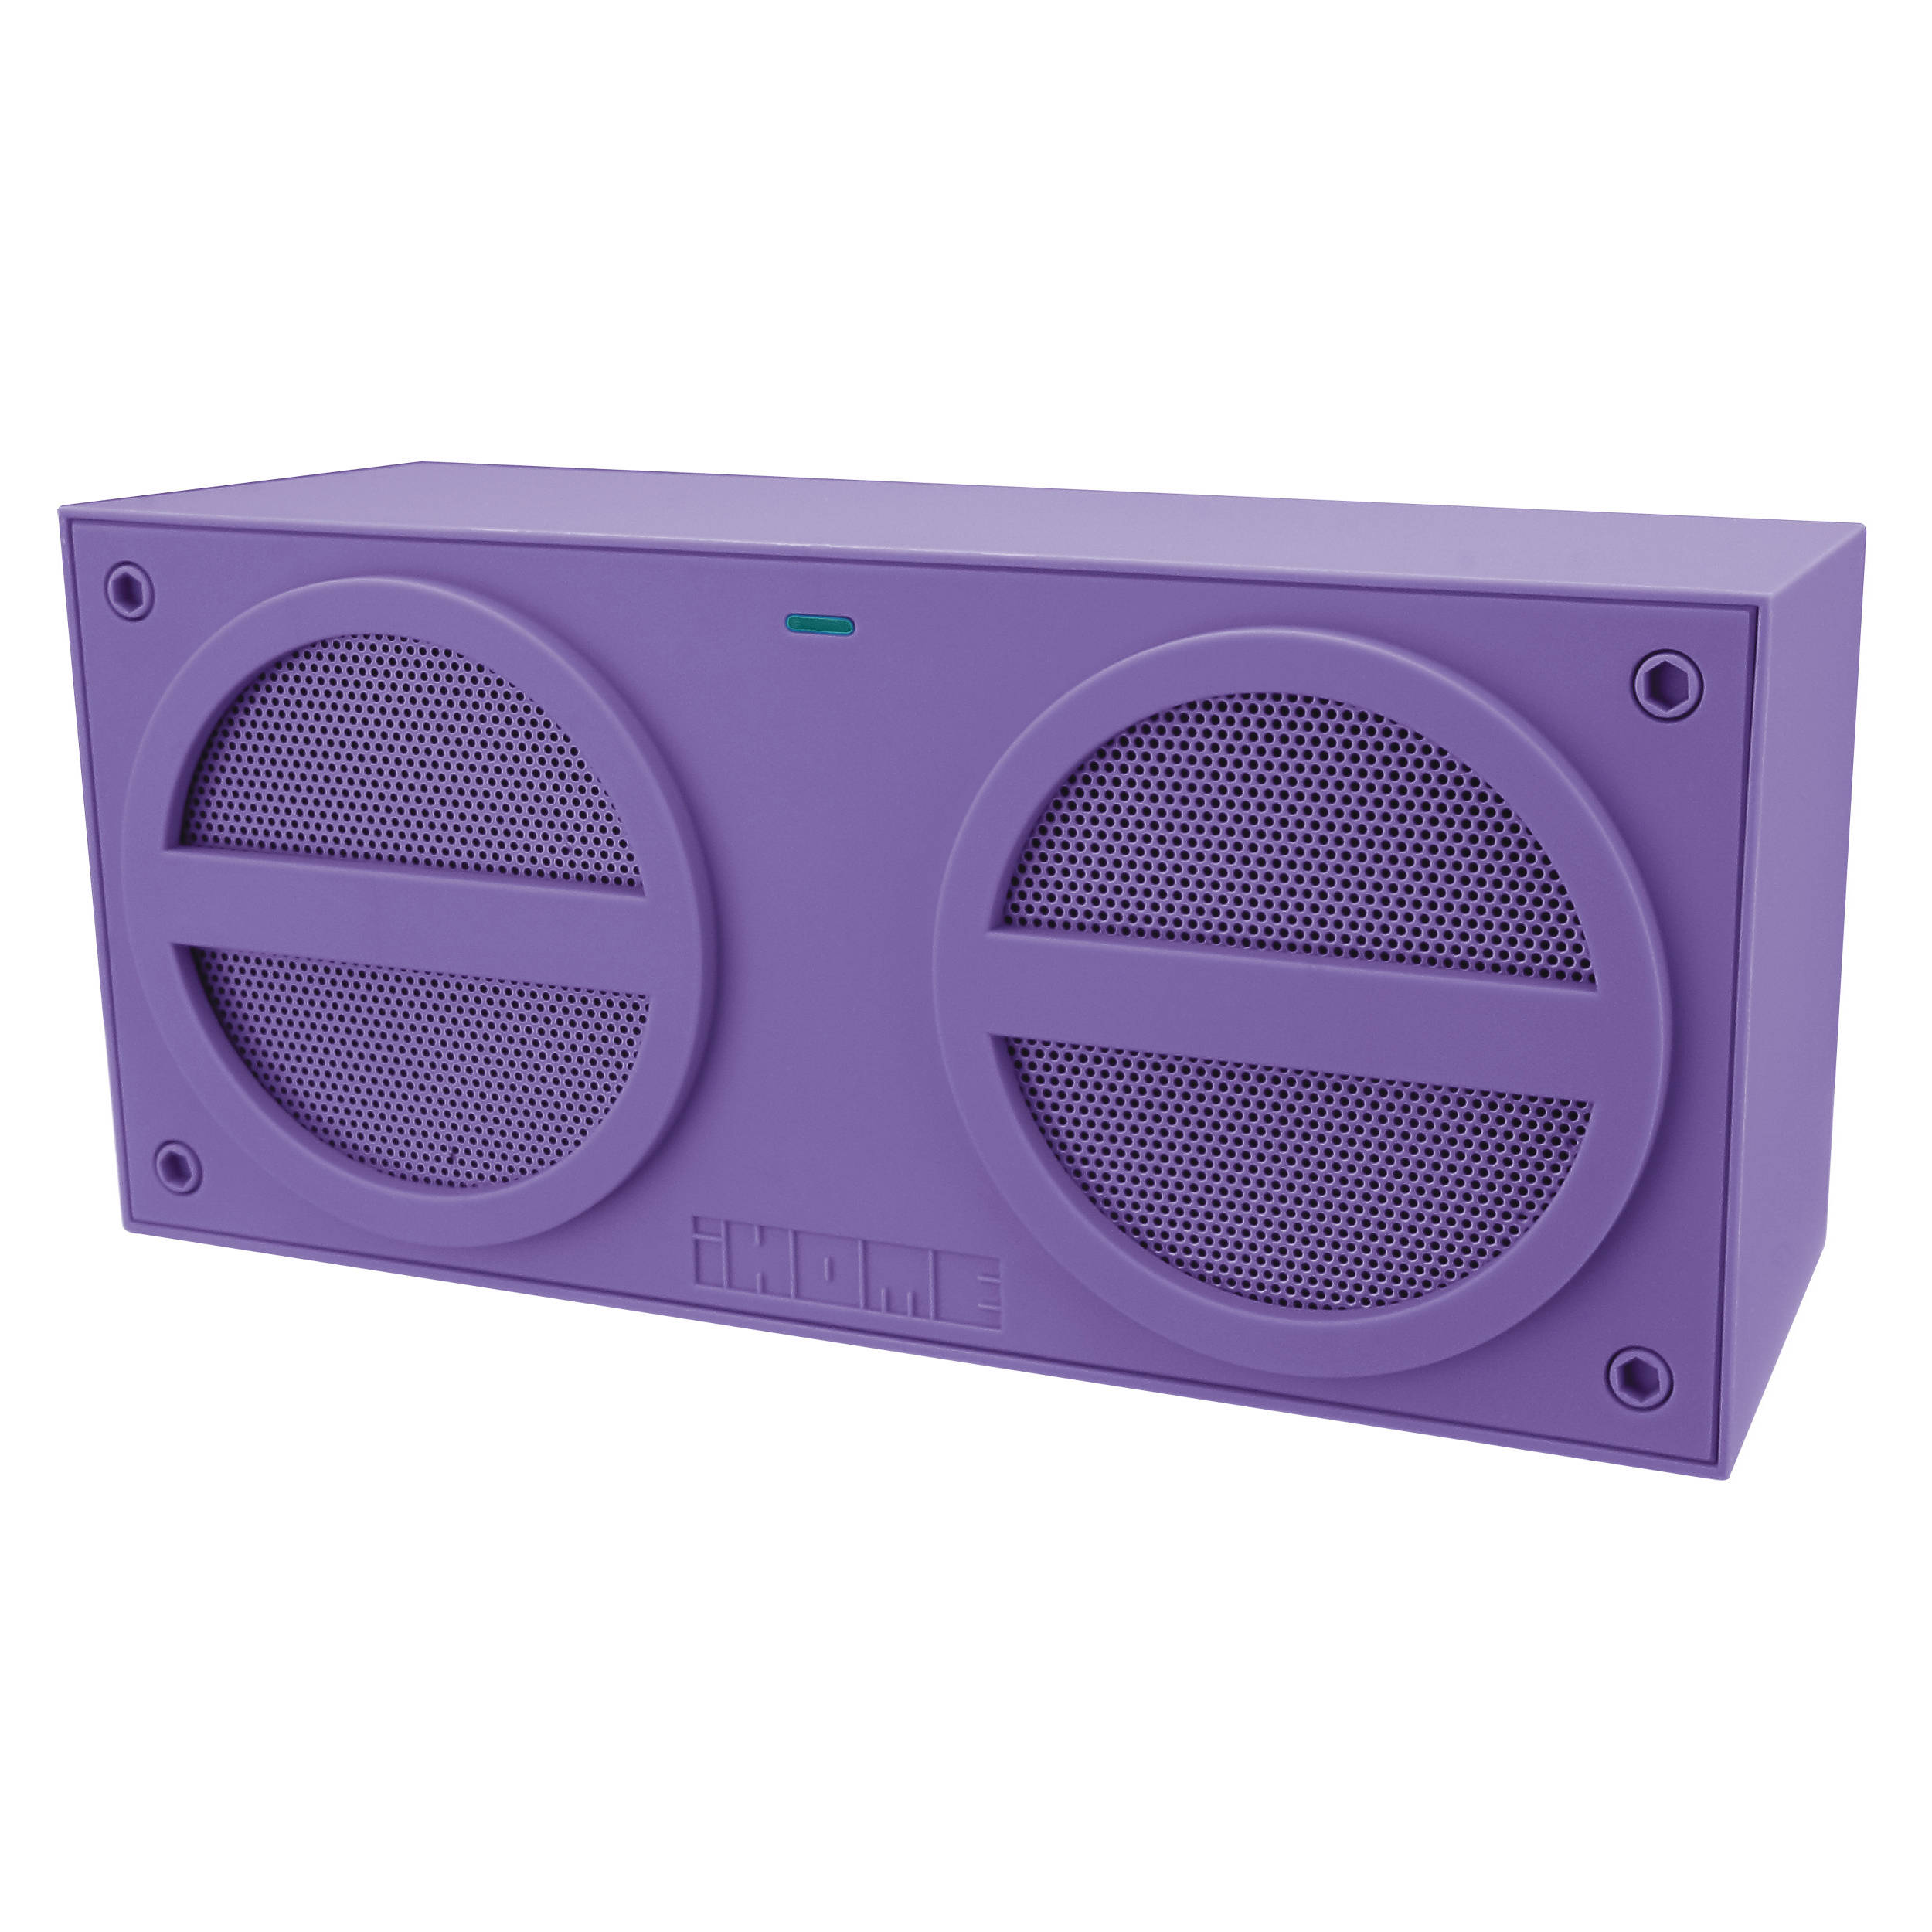 Ihome Bluetooth Rechargeable Stereo Mini Speaker In Ibn24ux Bh Plastic Smart Bracelet Circuit Board With High Rubberized Finish Purple